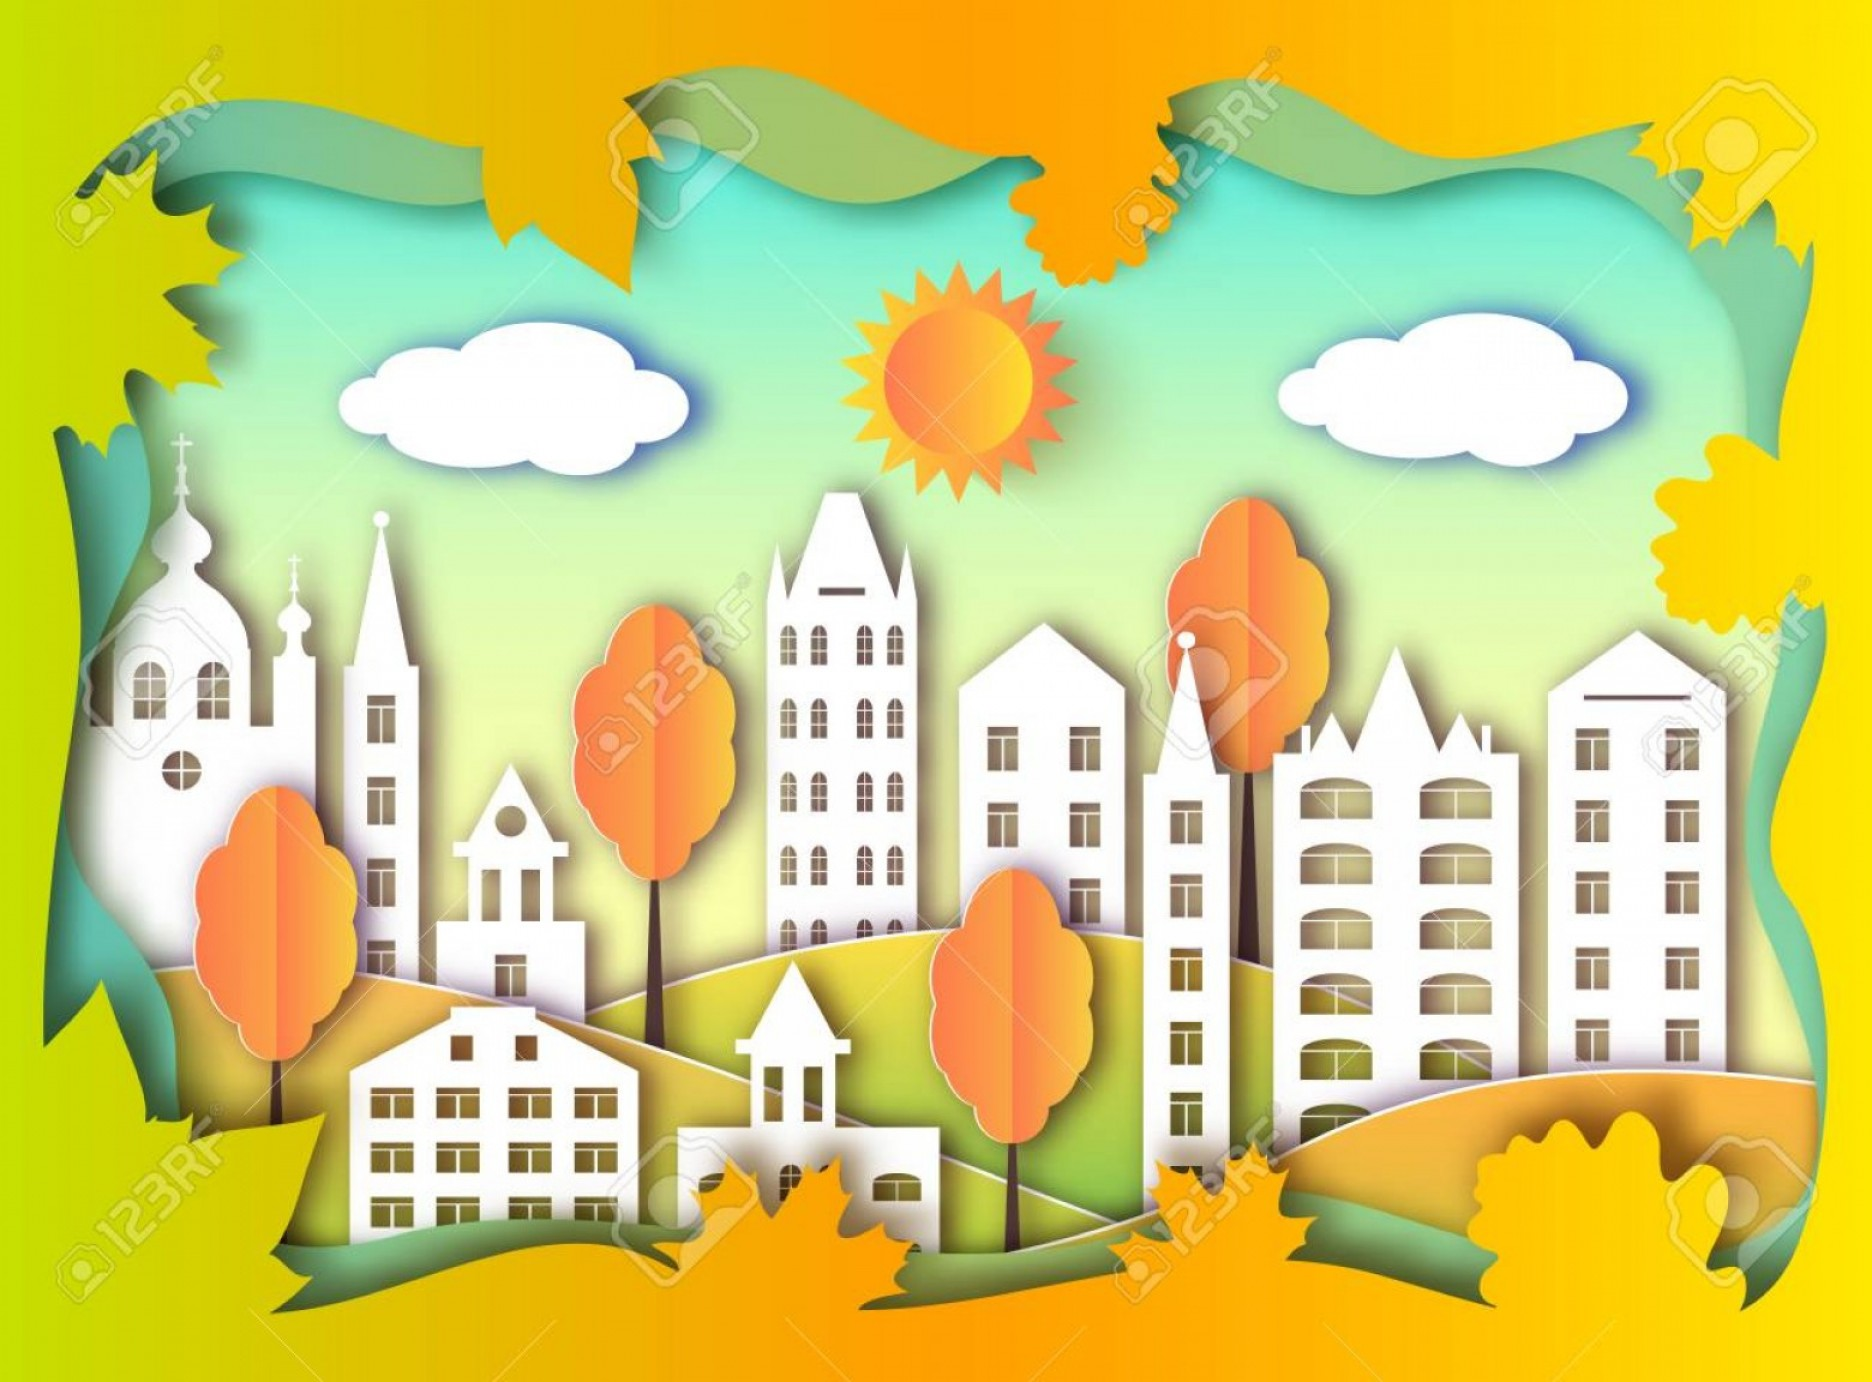 GA Tech Stinger Vector Art: Photostock Vector Colorful Building Of Big City Vector Illustration Paper Art Style